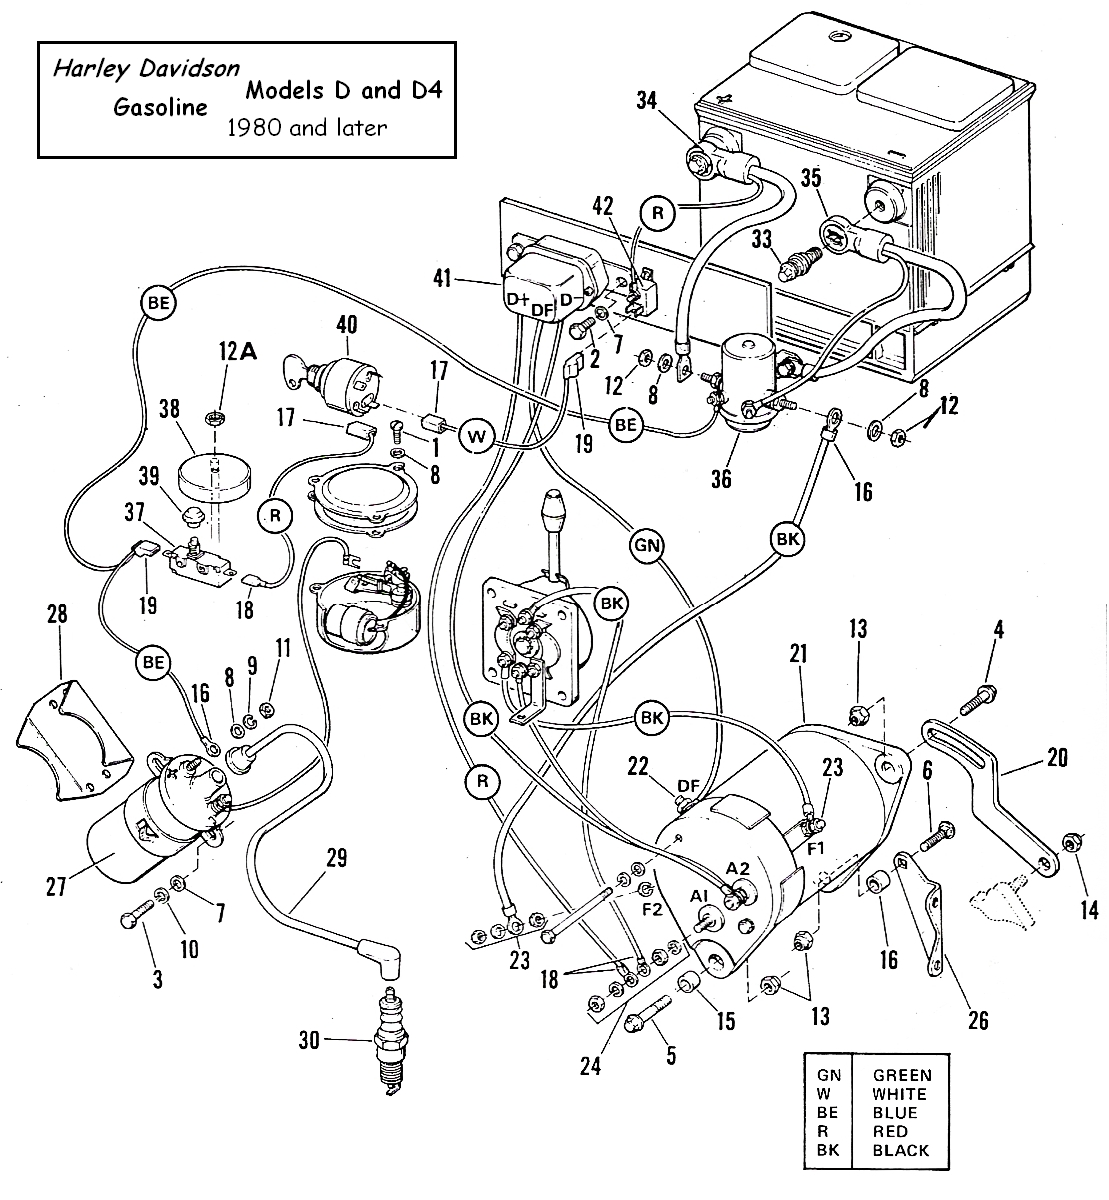 Harley Davidson Golf Cart D4 Wiring Diagram 1981 Flh Ignition Auto Electrical Wiringharley